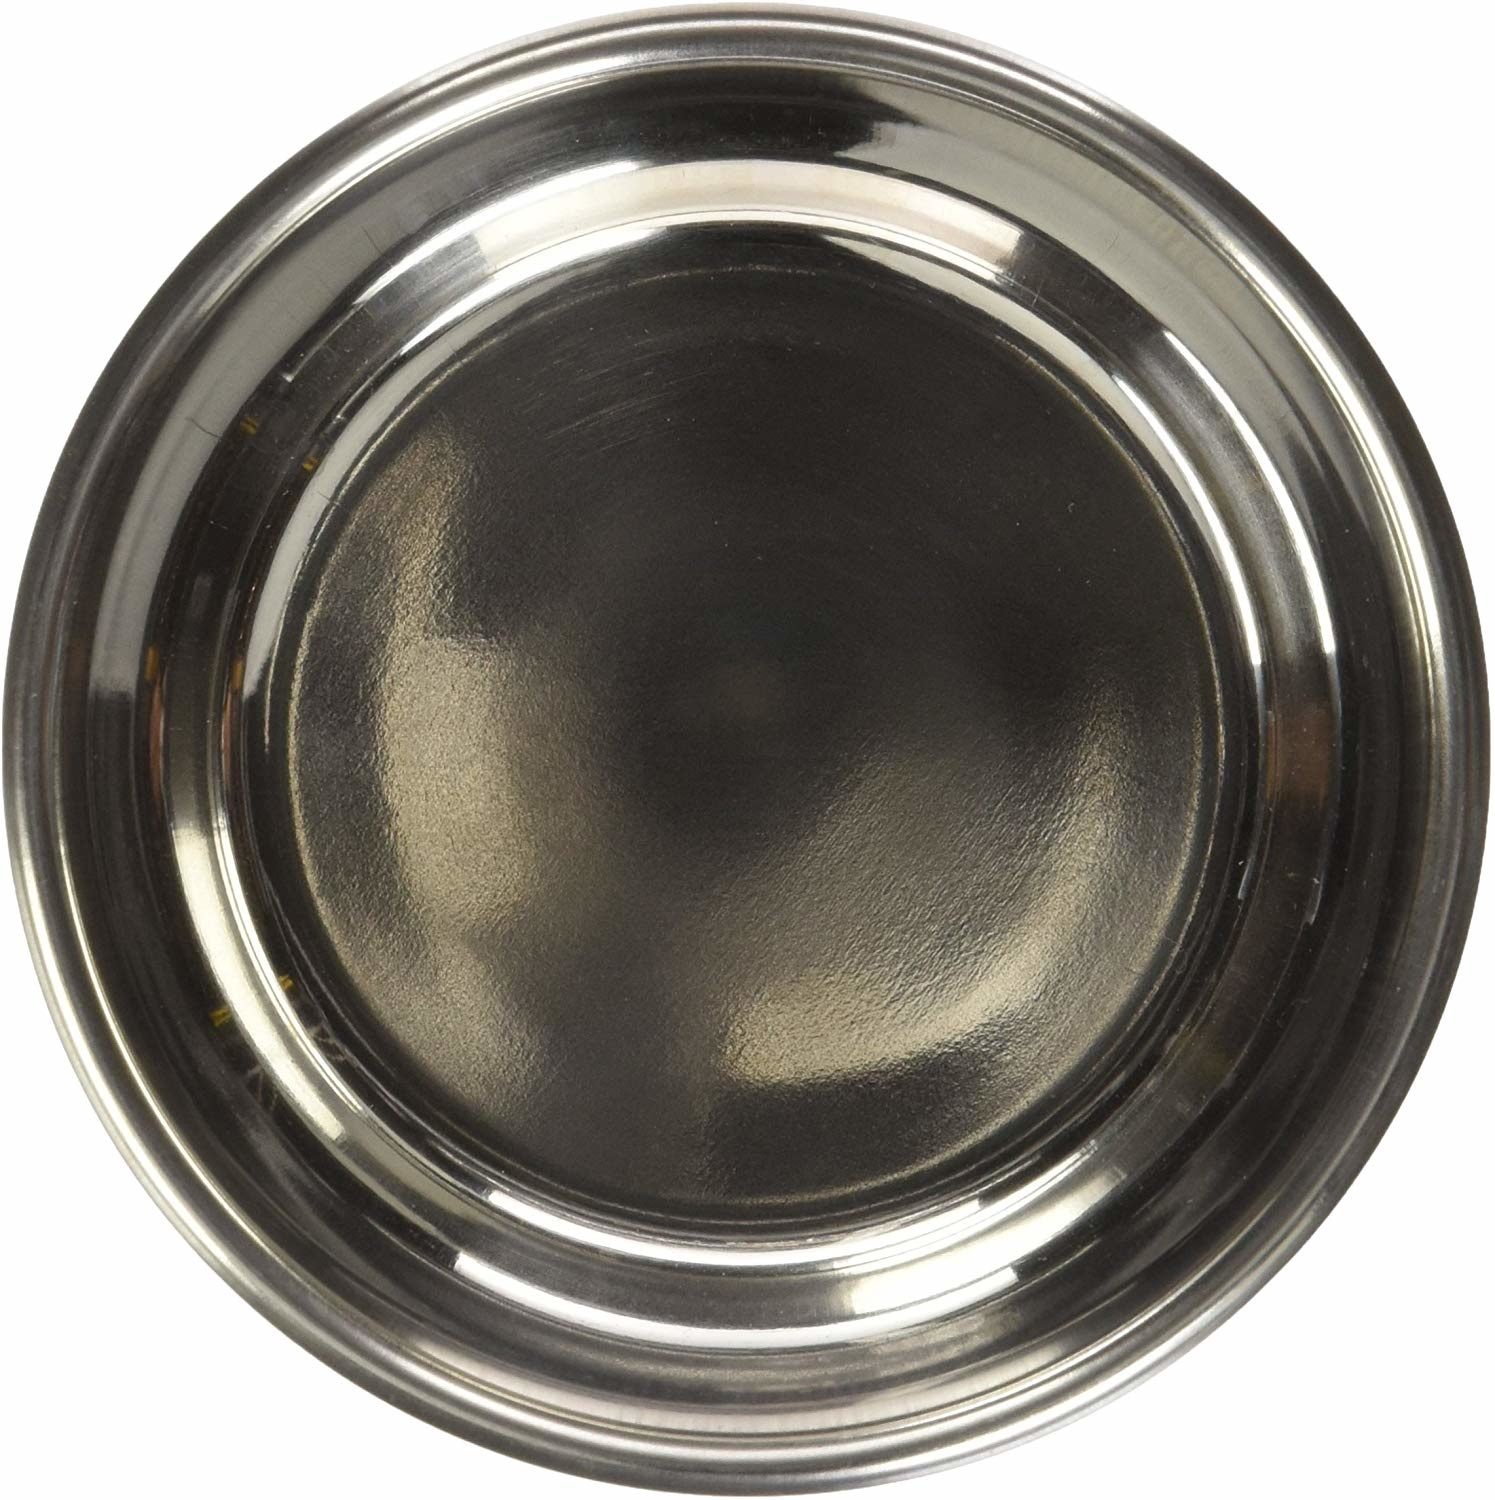 Cosmic Pet (OurPets) Durapet SS Bowl 1.25 Cup